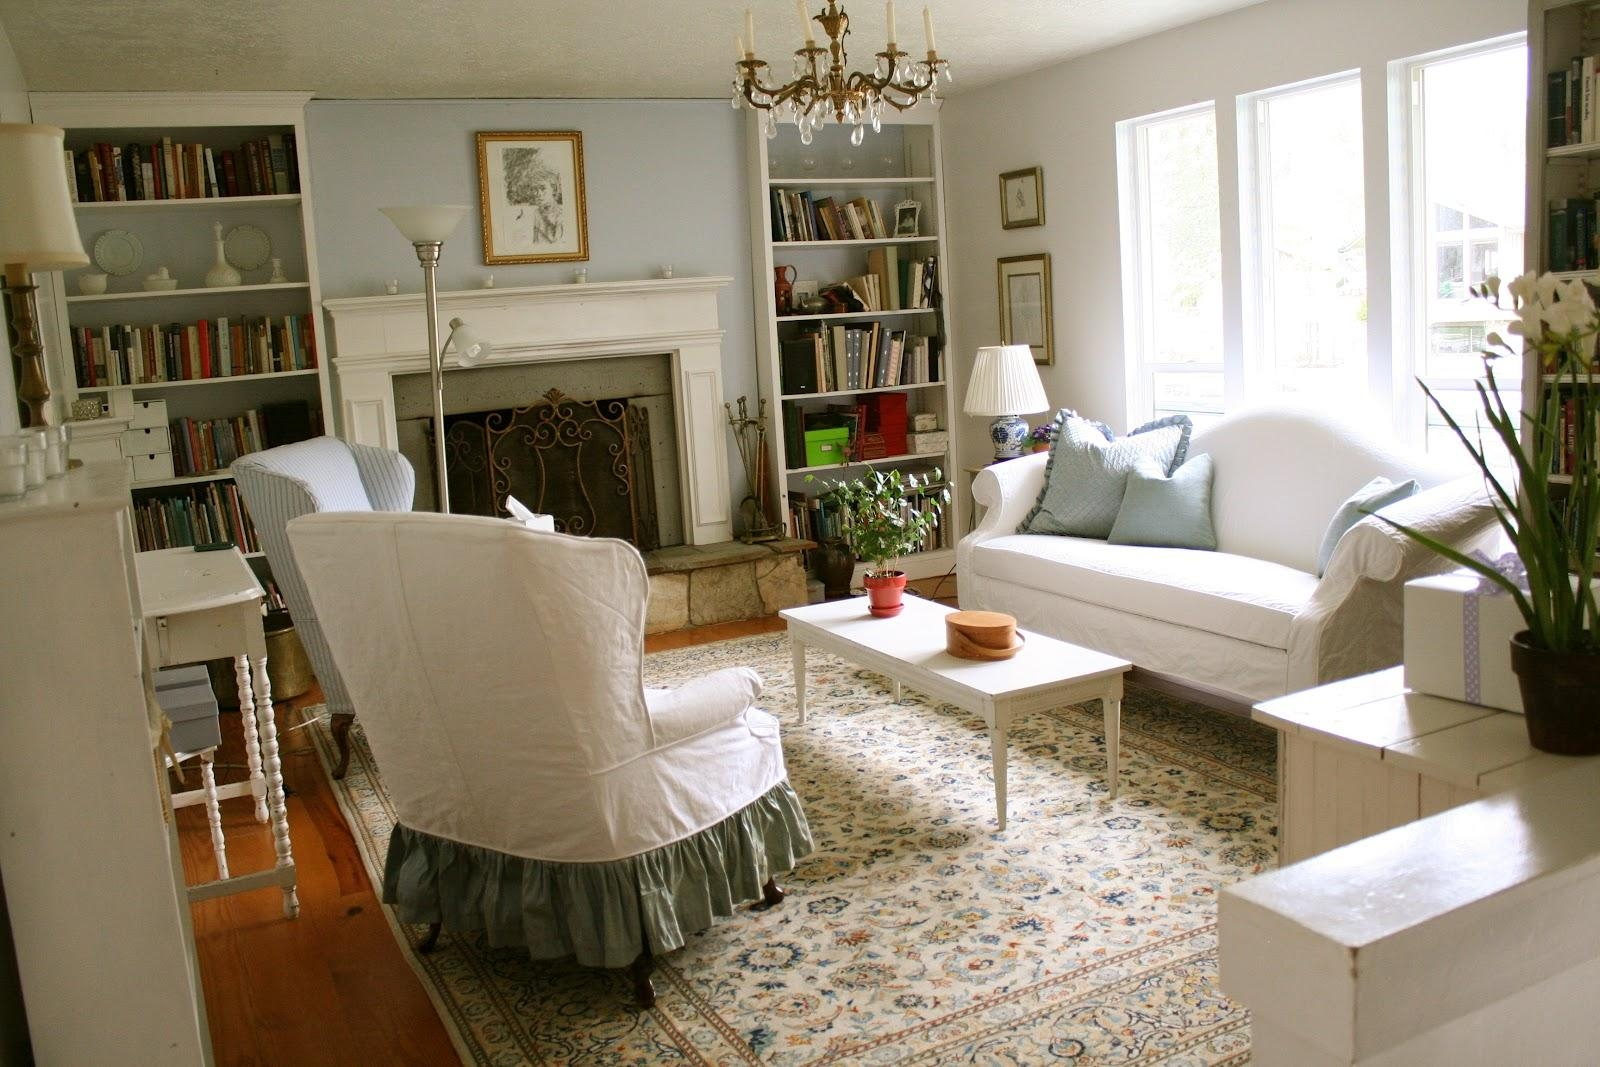 Custom Slipcoversshelley: White Camel Back Couch Within Camelback Slipcovers (Image 9 of 20)